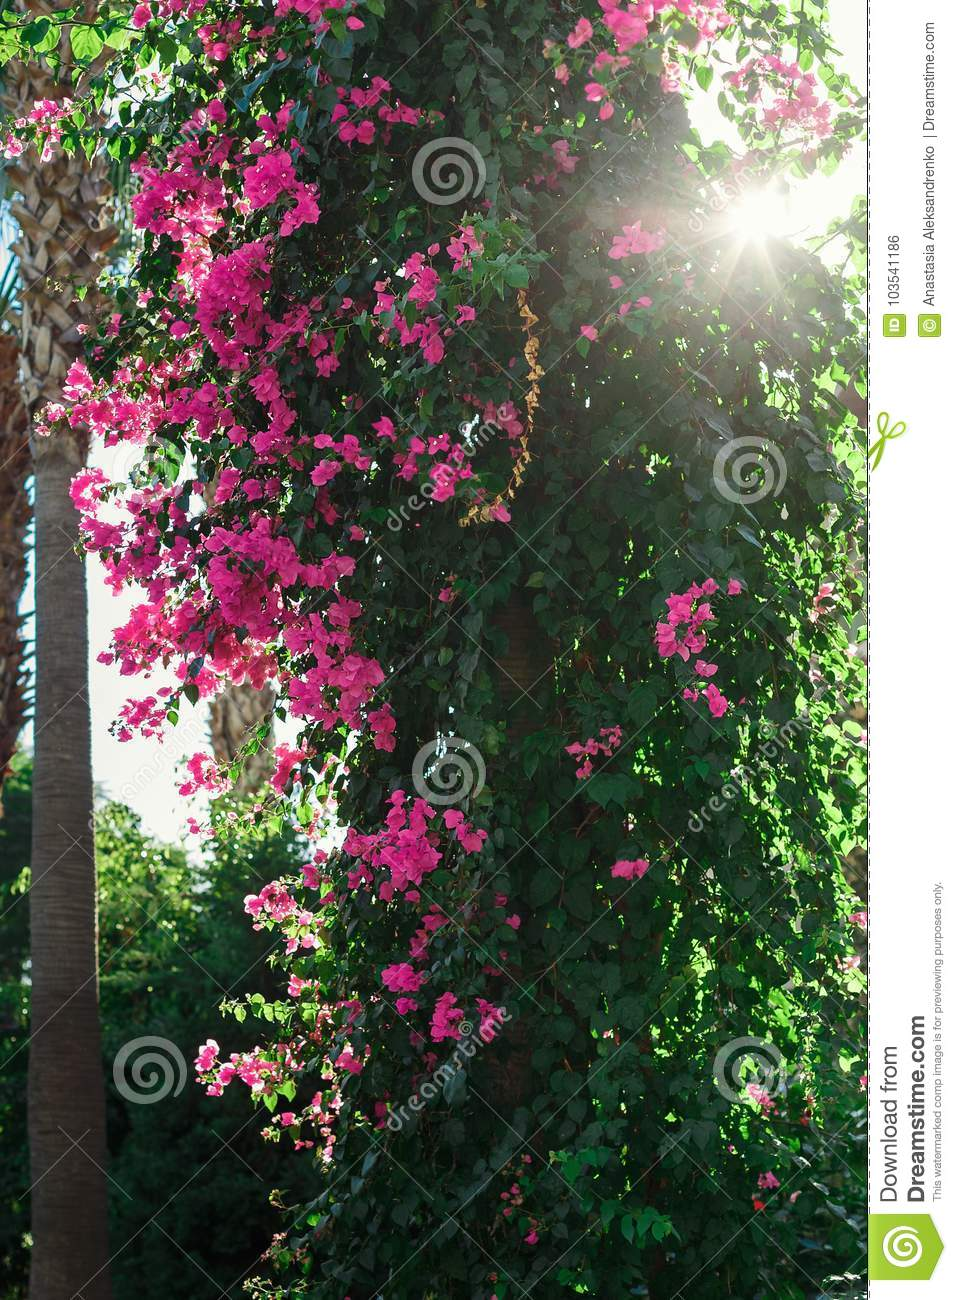 On the trunk of palm trees pink flowers of greece stock photo download on the trunk of palm trees pink flowers of greece stock photo image of mightylinksfo